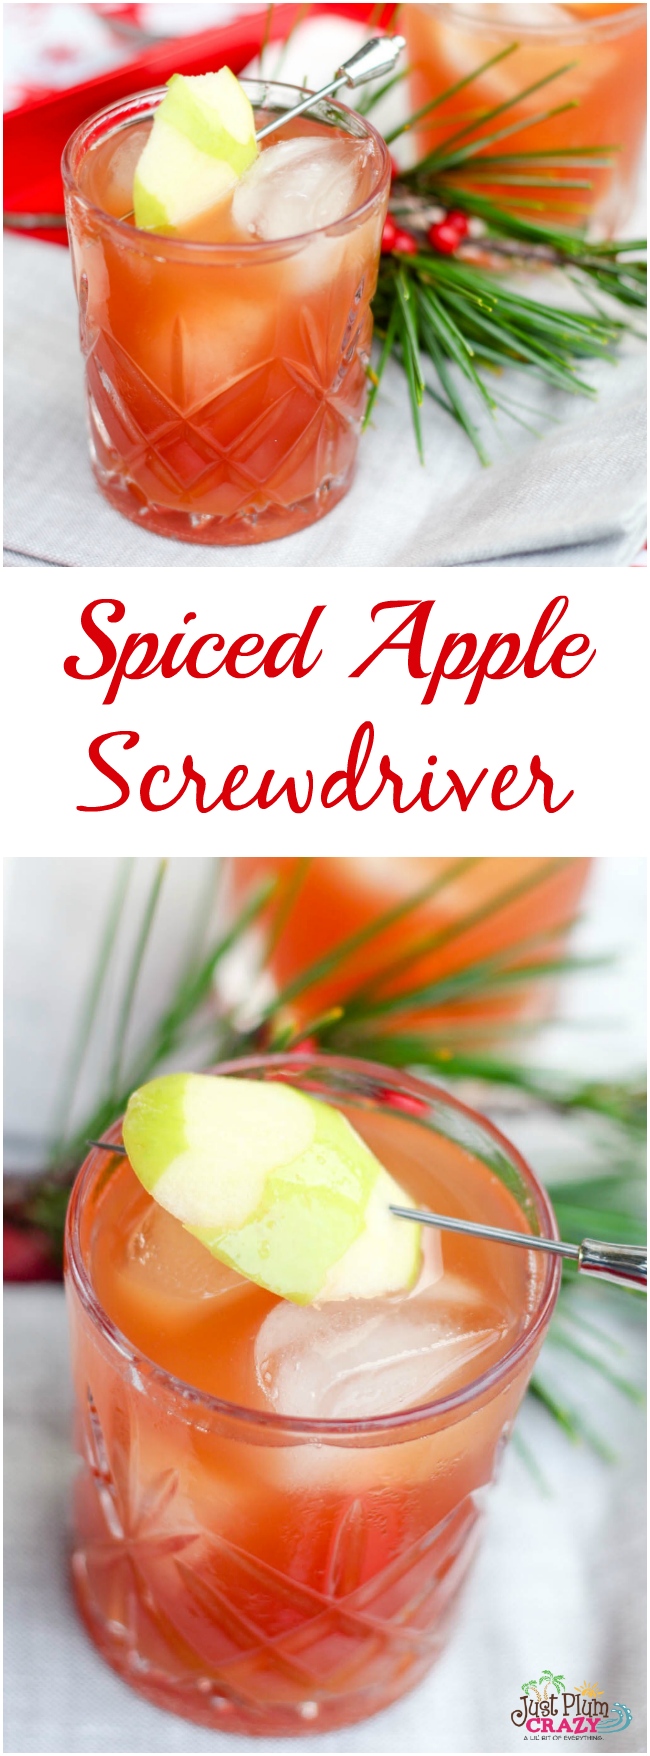 We are sharing with you a Spiced Apple Screwdriver recipe. It's sweet and sour at the same time but you and your friends and family are going to love it.